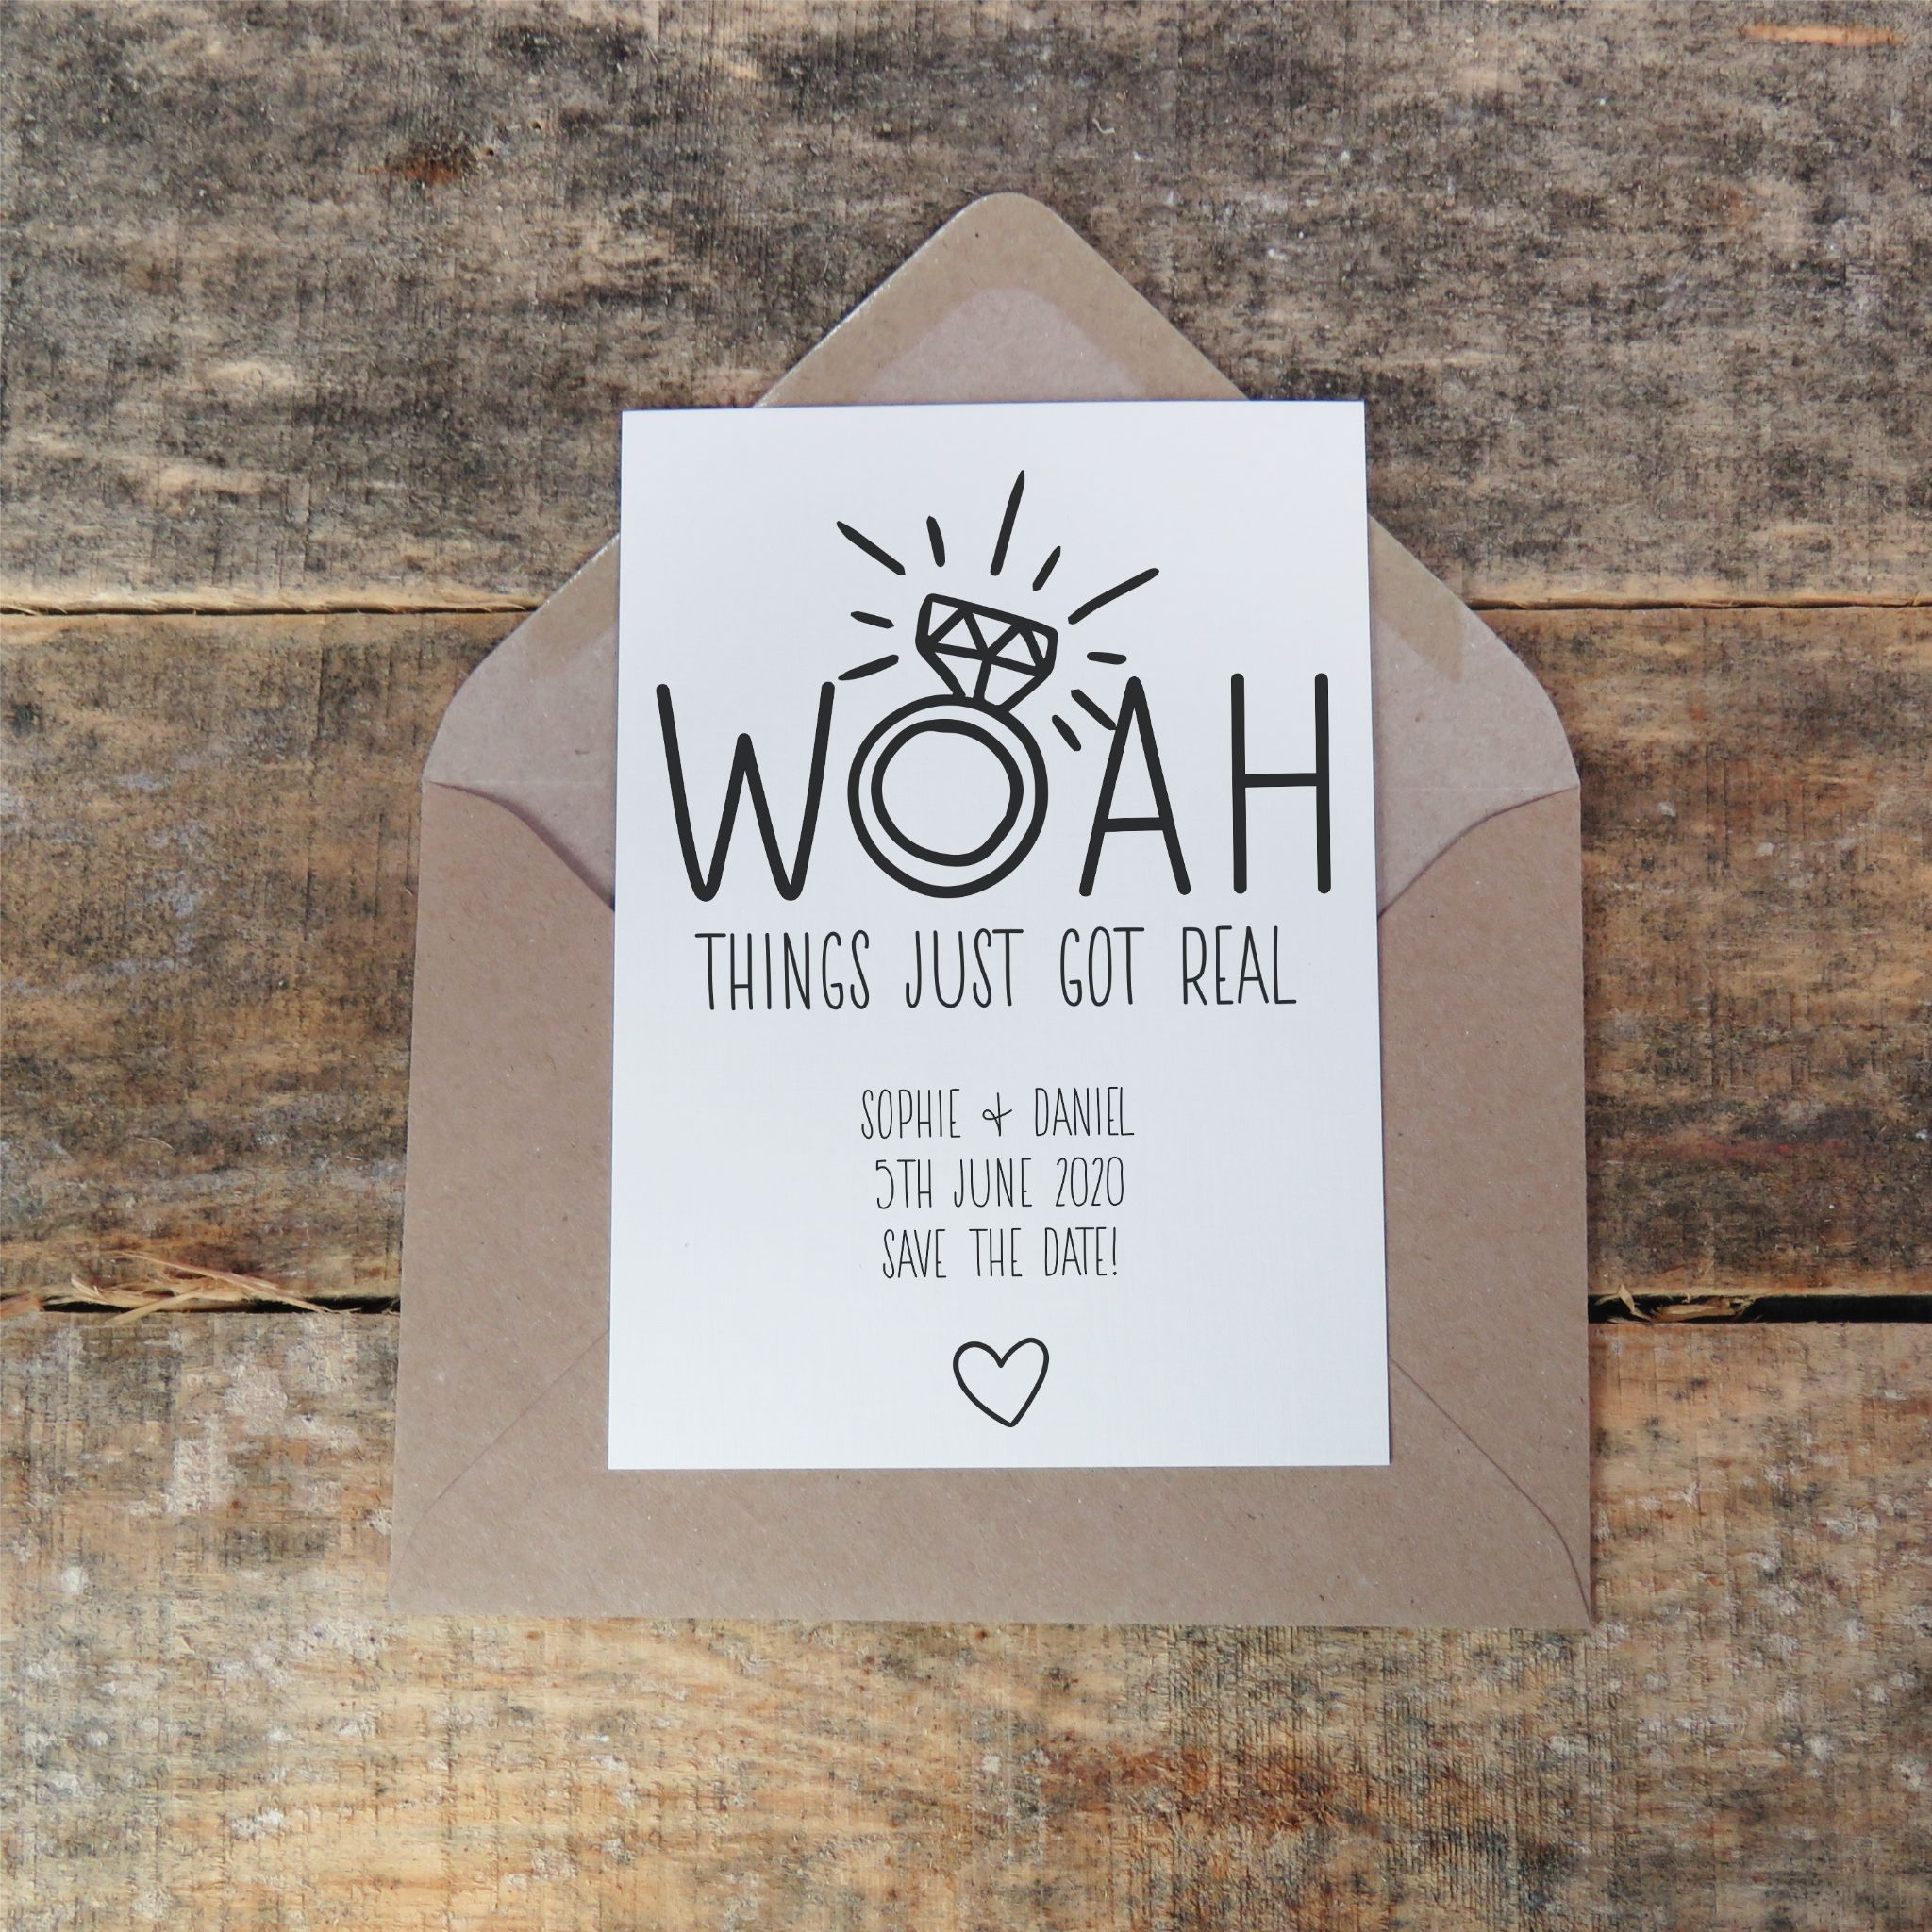 Personalised Funny Save The Dates Save The Date Cards Wedding Invitation Woah Save The Date